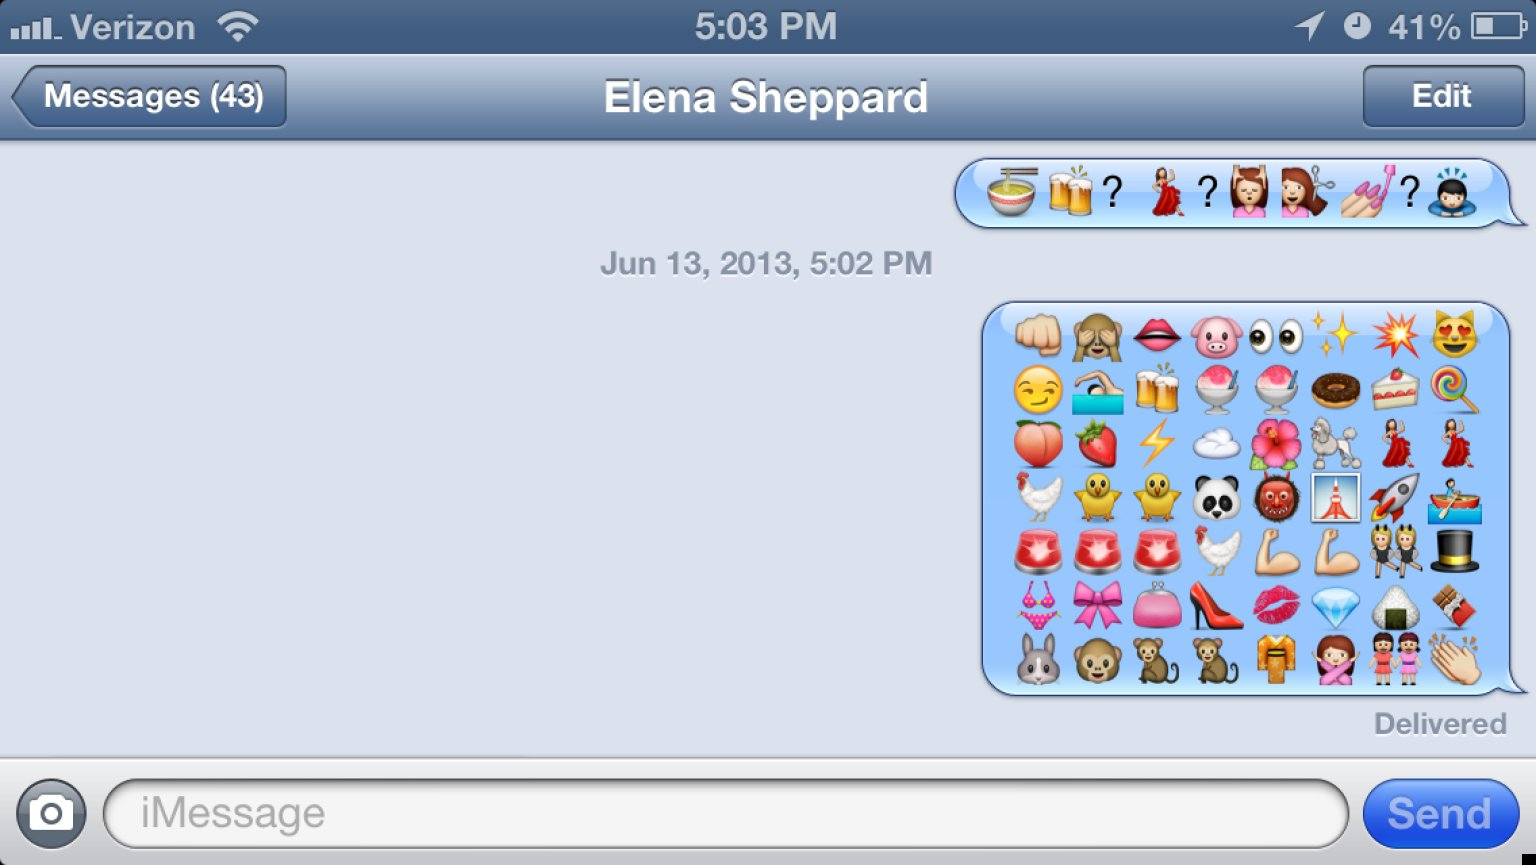 Funny Pictures To Make With Emojis Cool Facebook Happy Birthday 1536x865